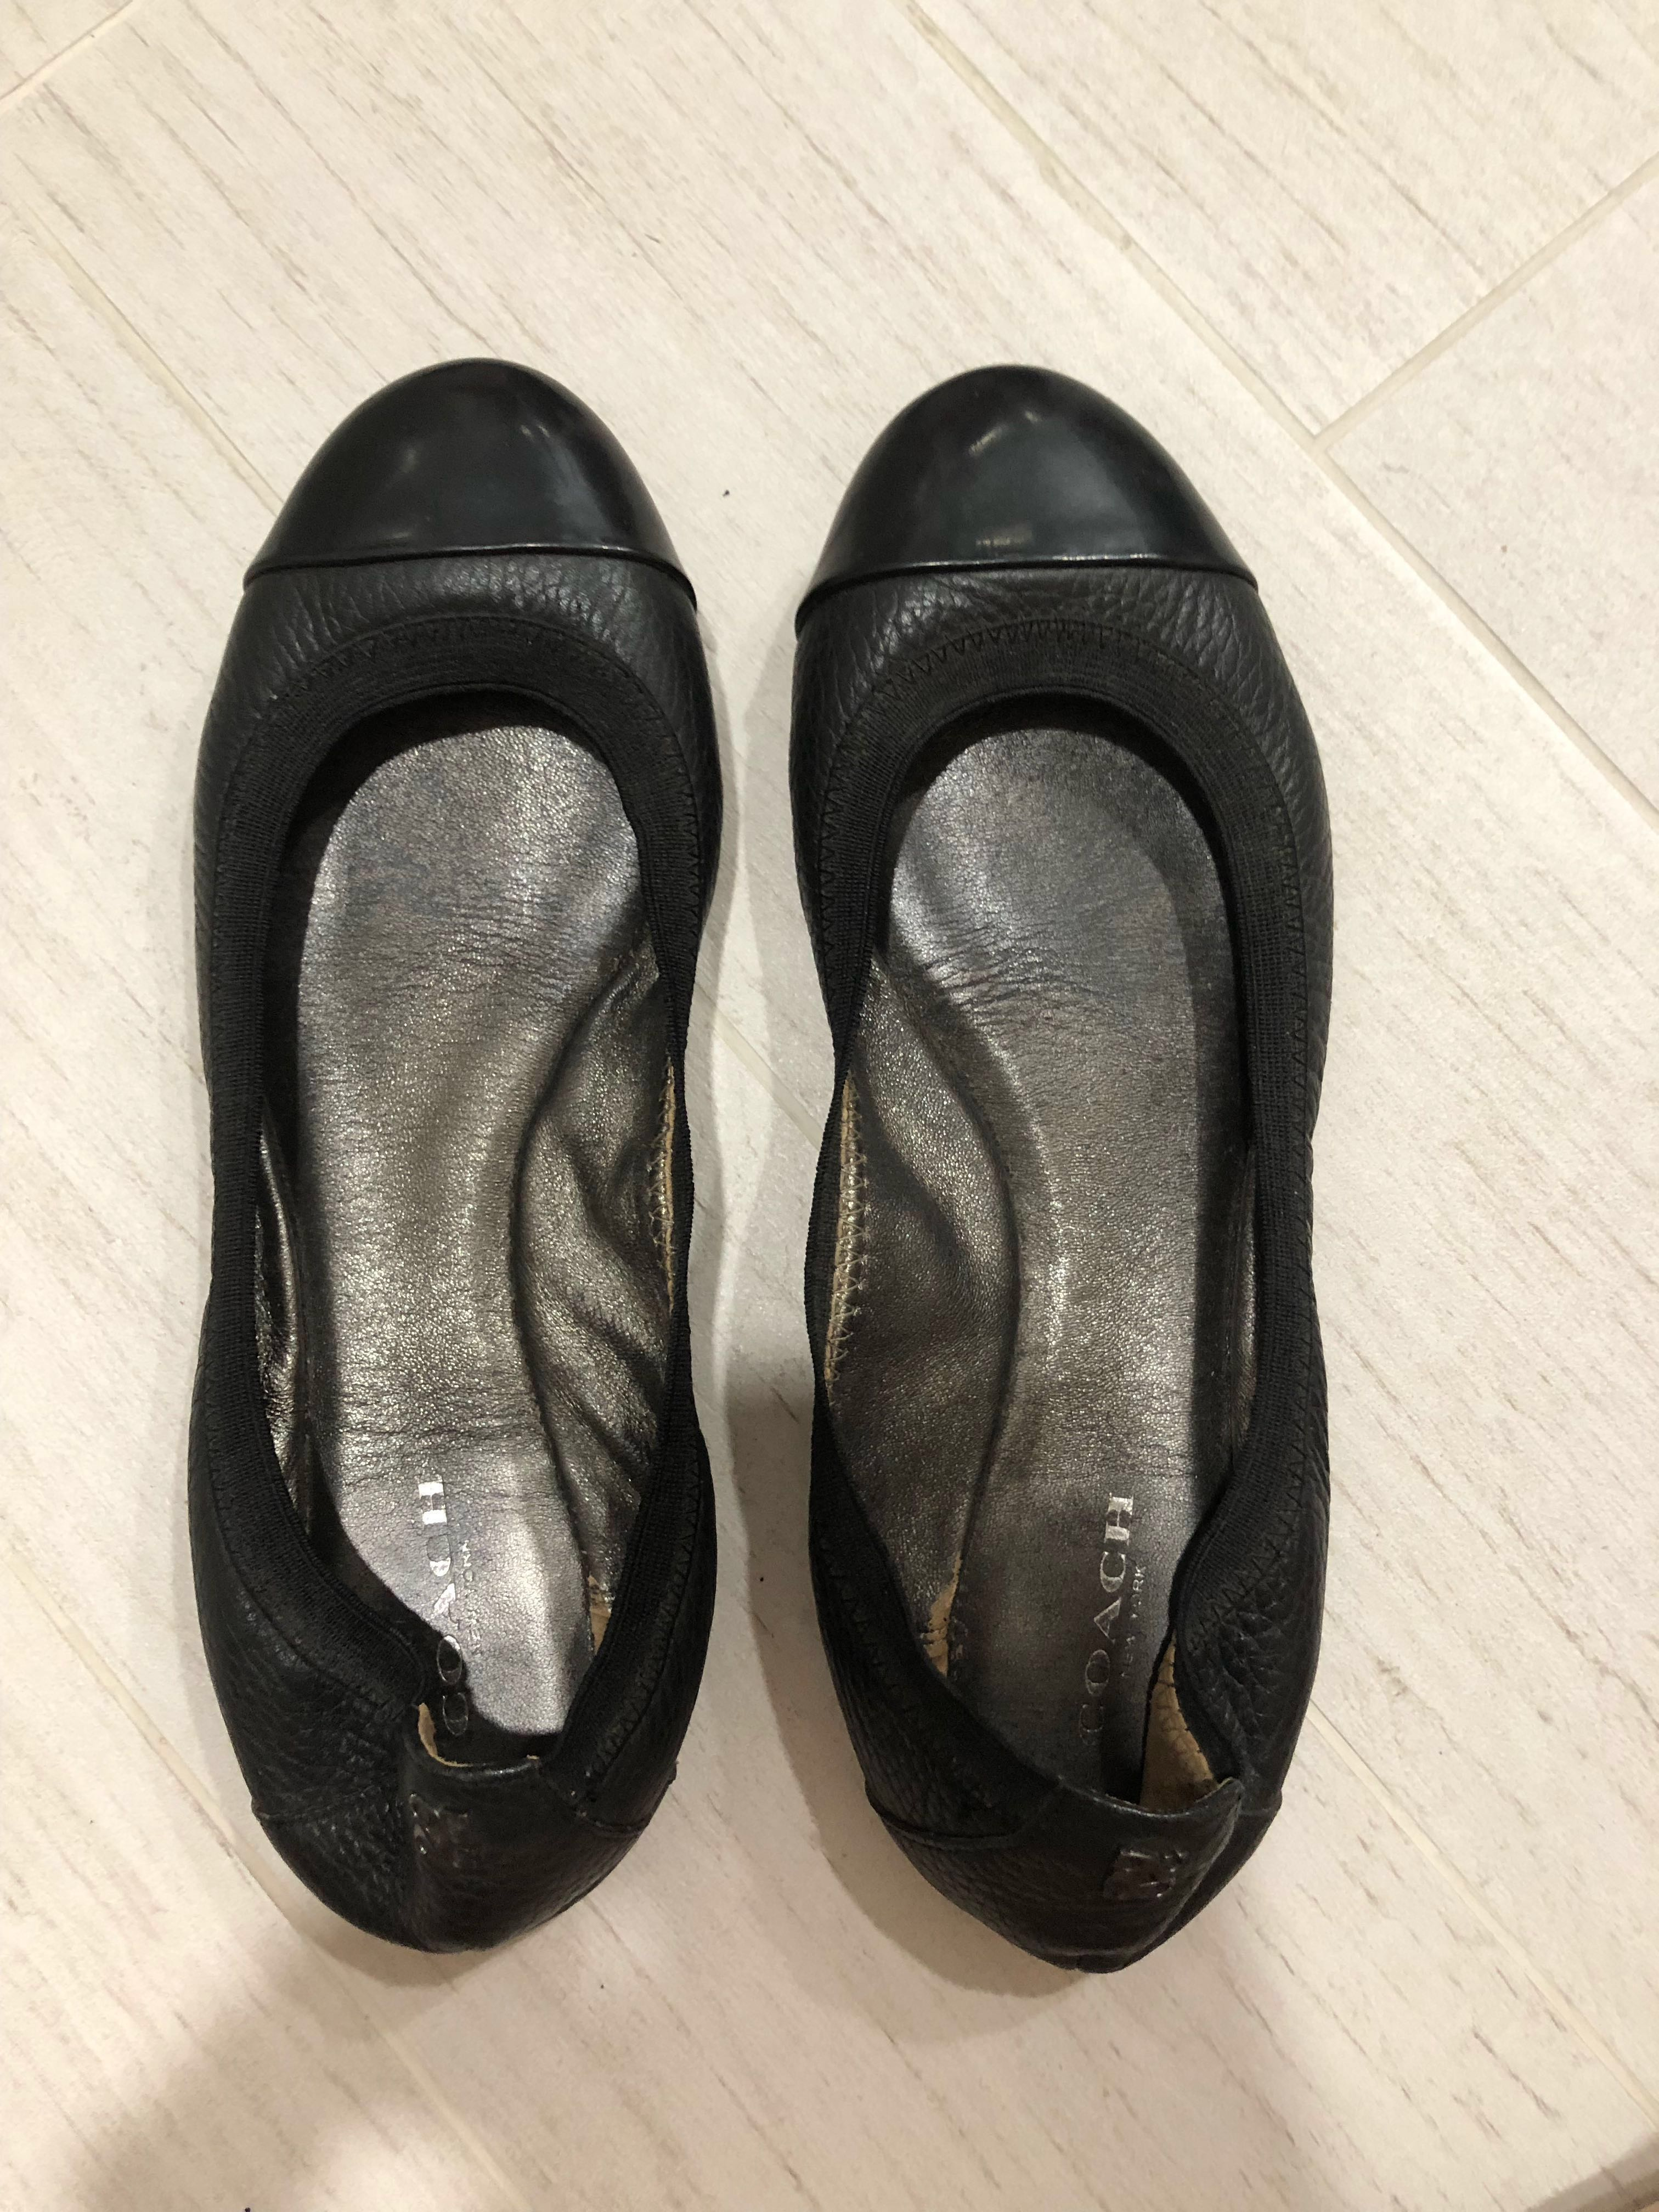 e632dc2ae Coach black leather shoes flats US 7.5, Women's Fashion, Shoes, Flats &  Sandals on Carousell